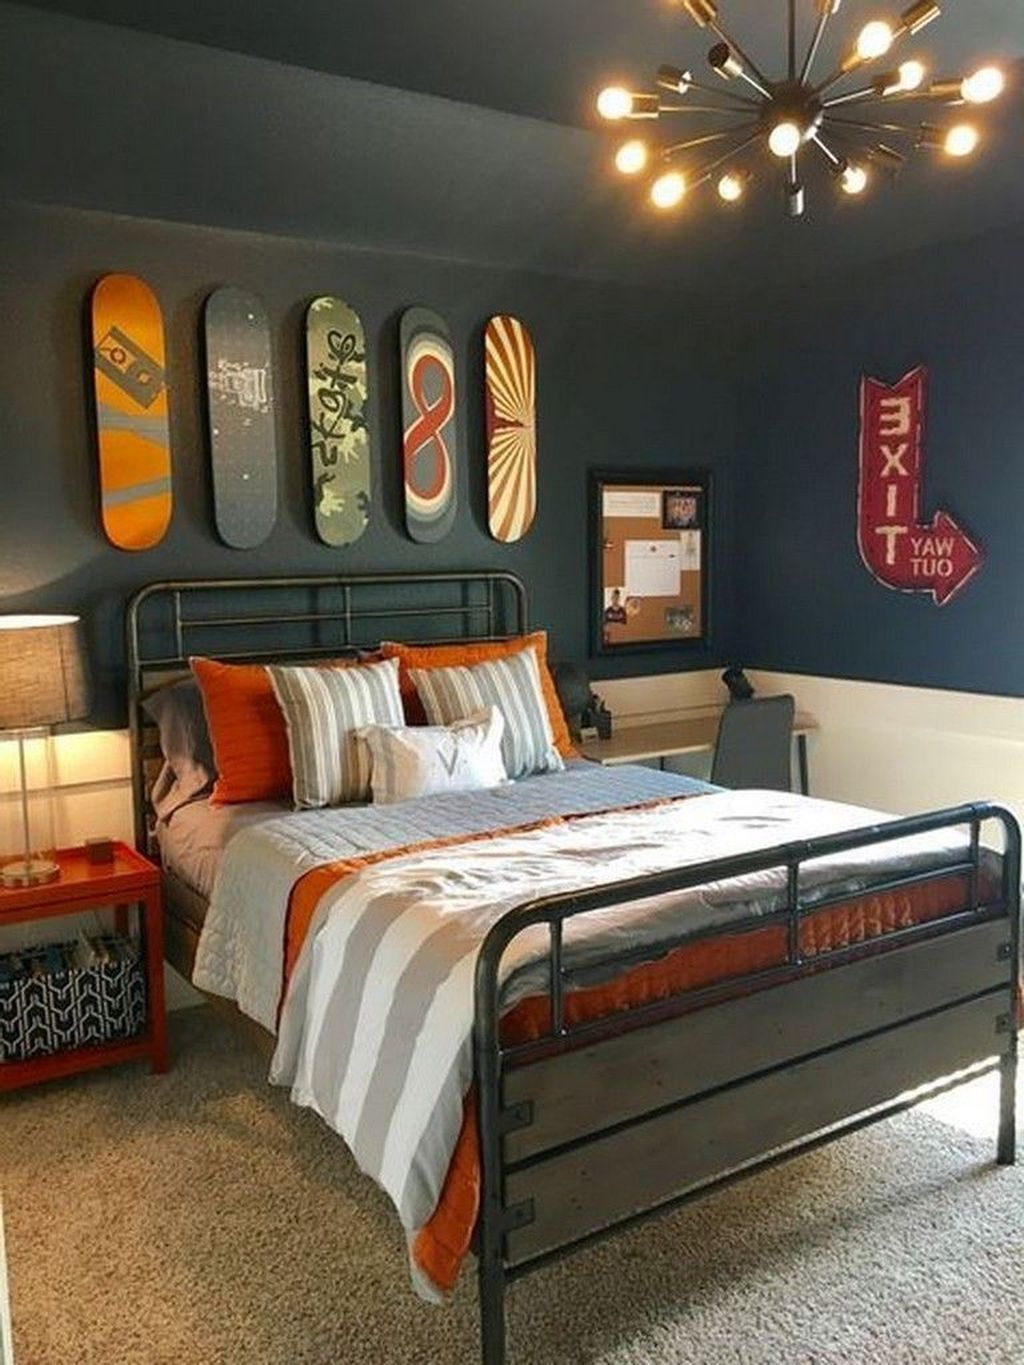 cool bedroom ideas for teenage guys small rooms on 20 affordable bedroom decor ideas for your little boys trenduhome boys bedroom colors boy bedroom design small room bedroom boys bedroom colors boy bedroom design